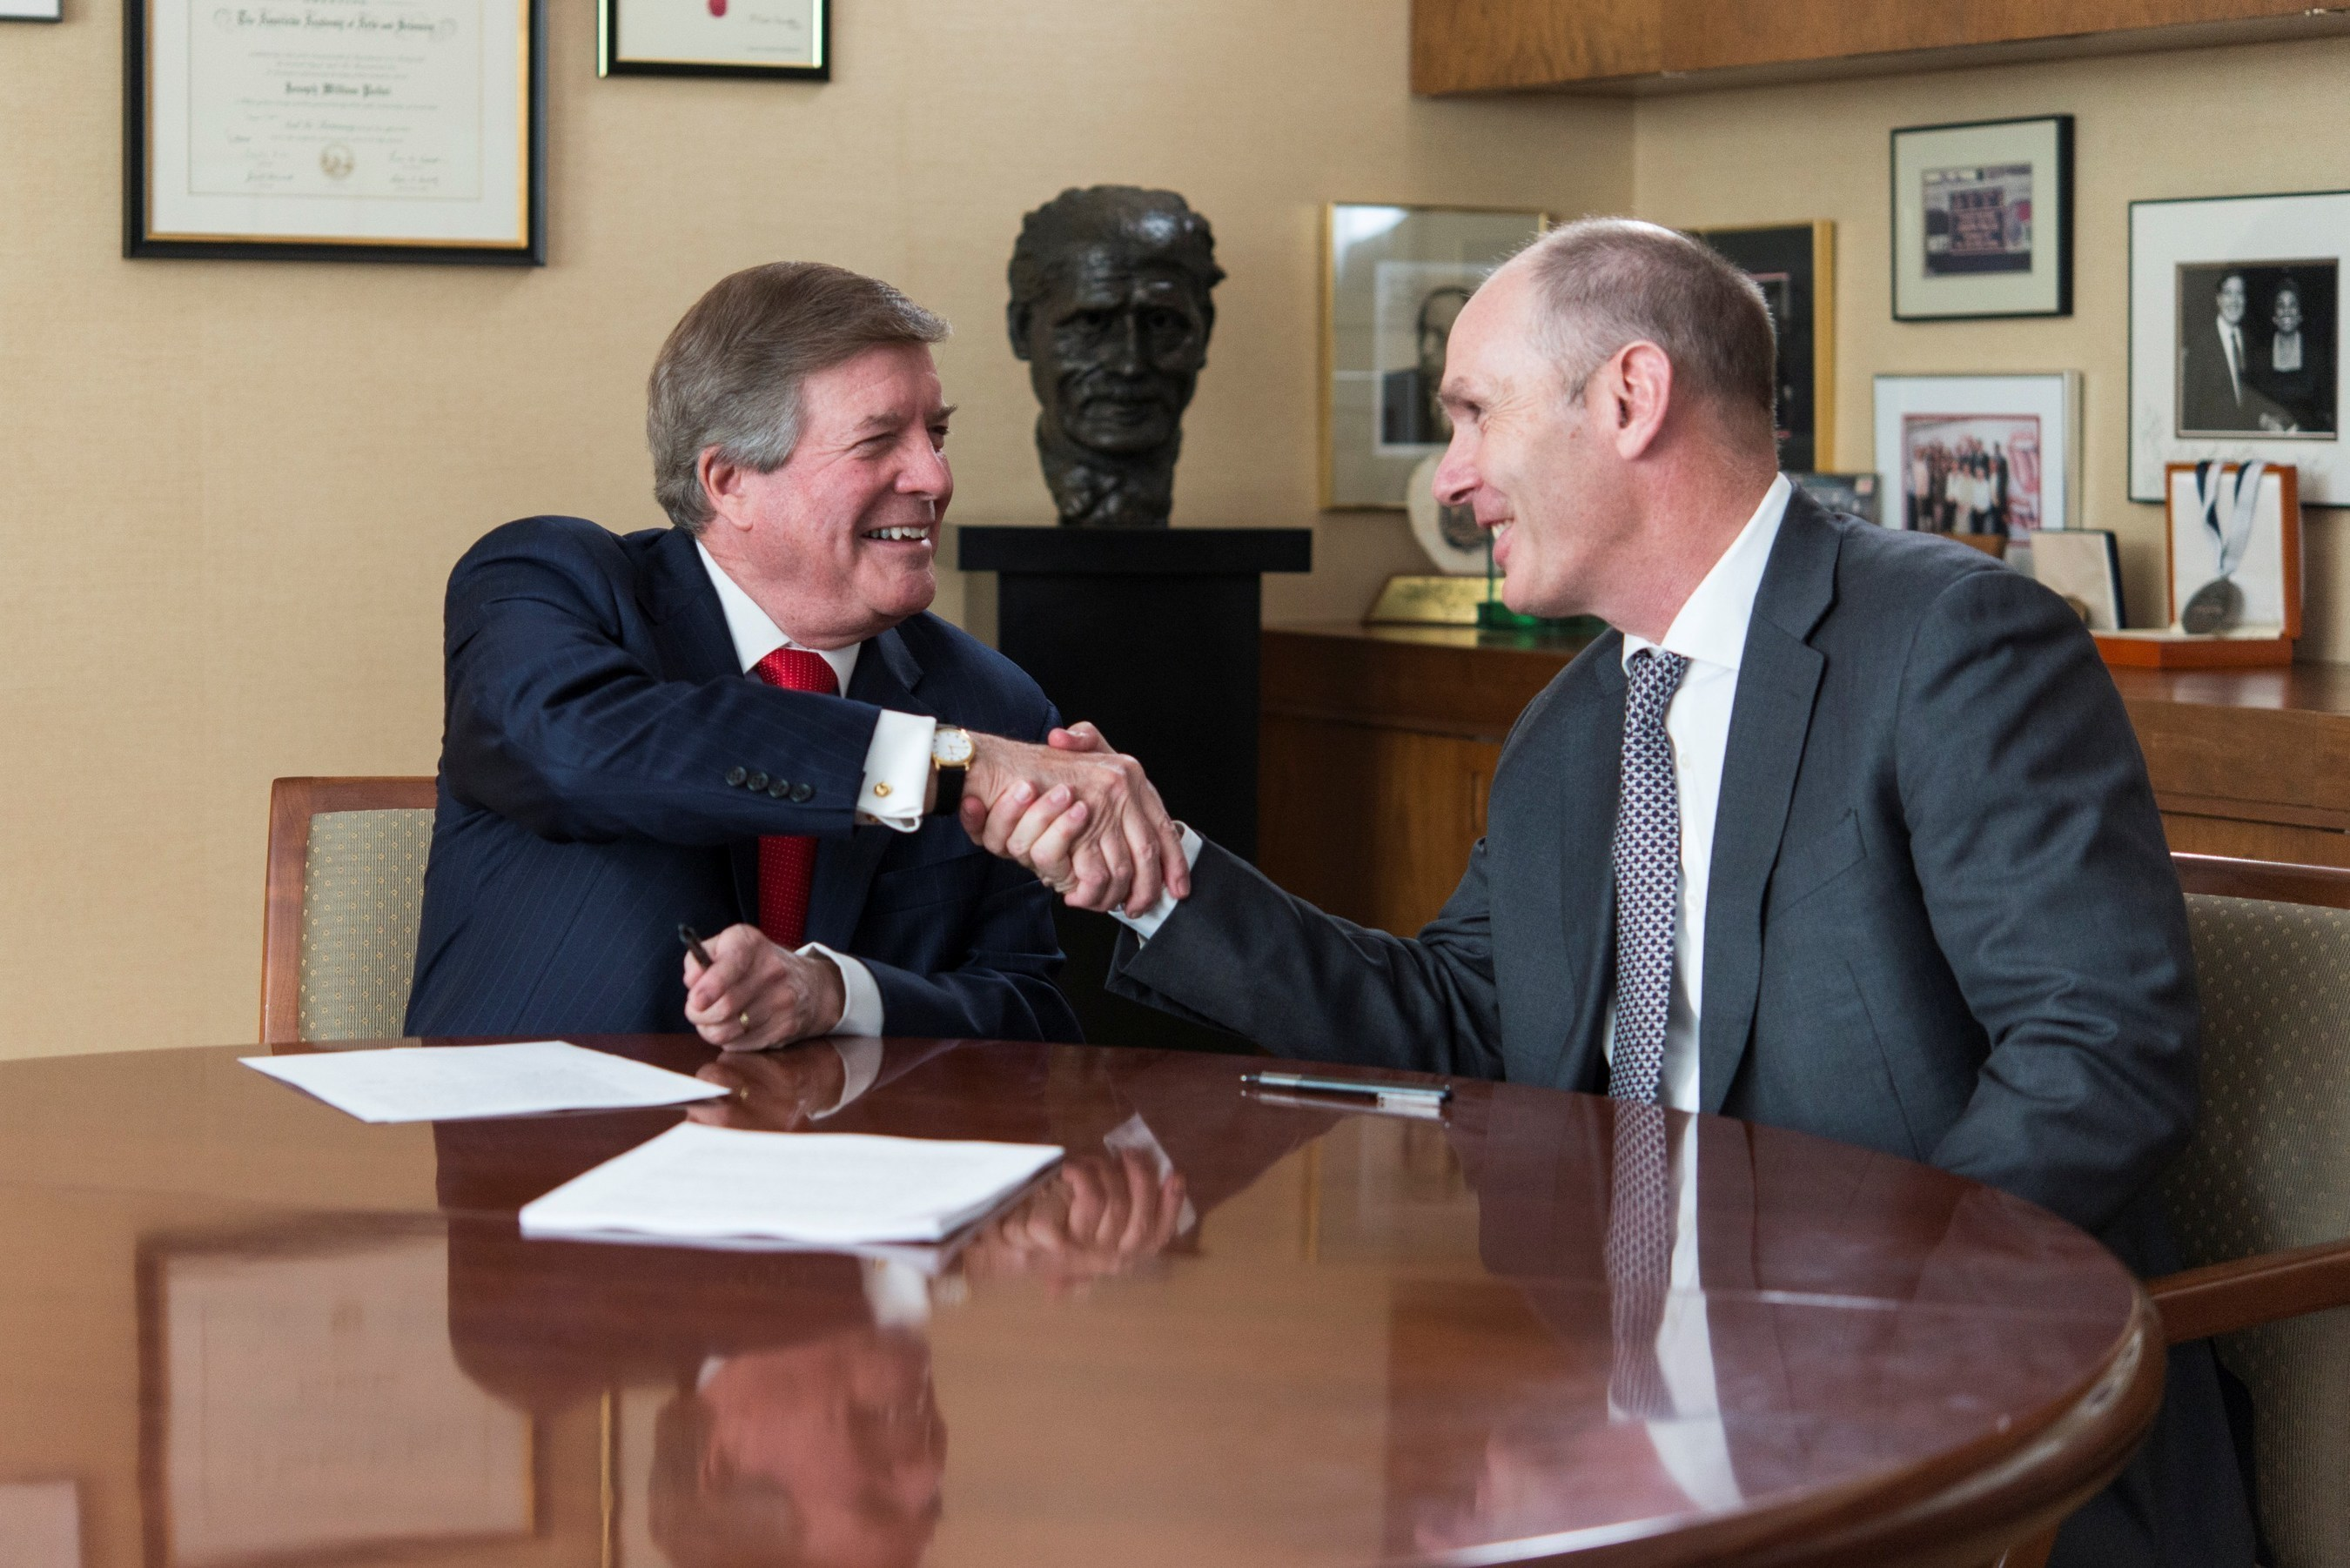 Left to right: Juilliard President Joseph W. Polisi and Andrew Fitzmaurice, CEO of Nord Anglia Education. Photo credit: Gil Vaknin